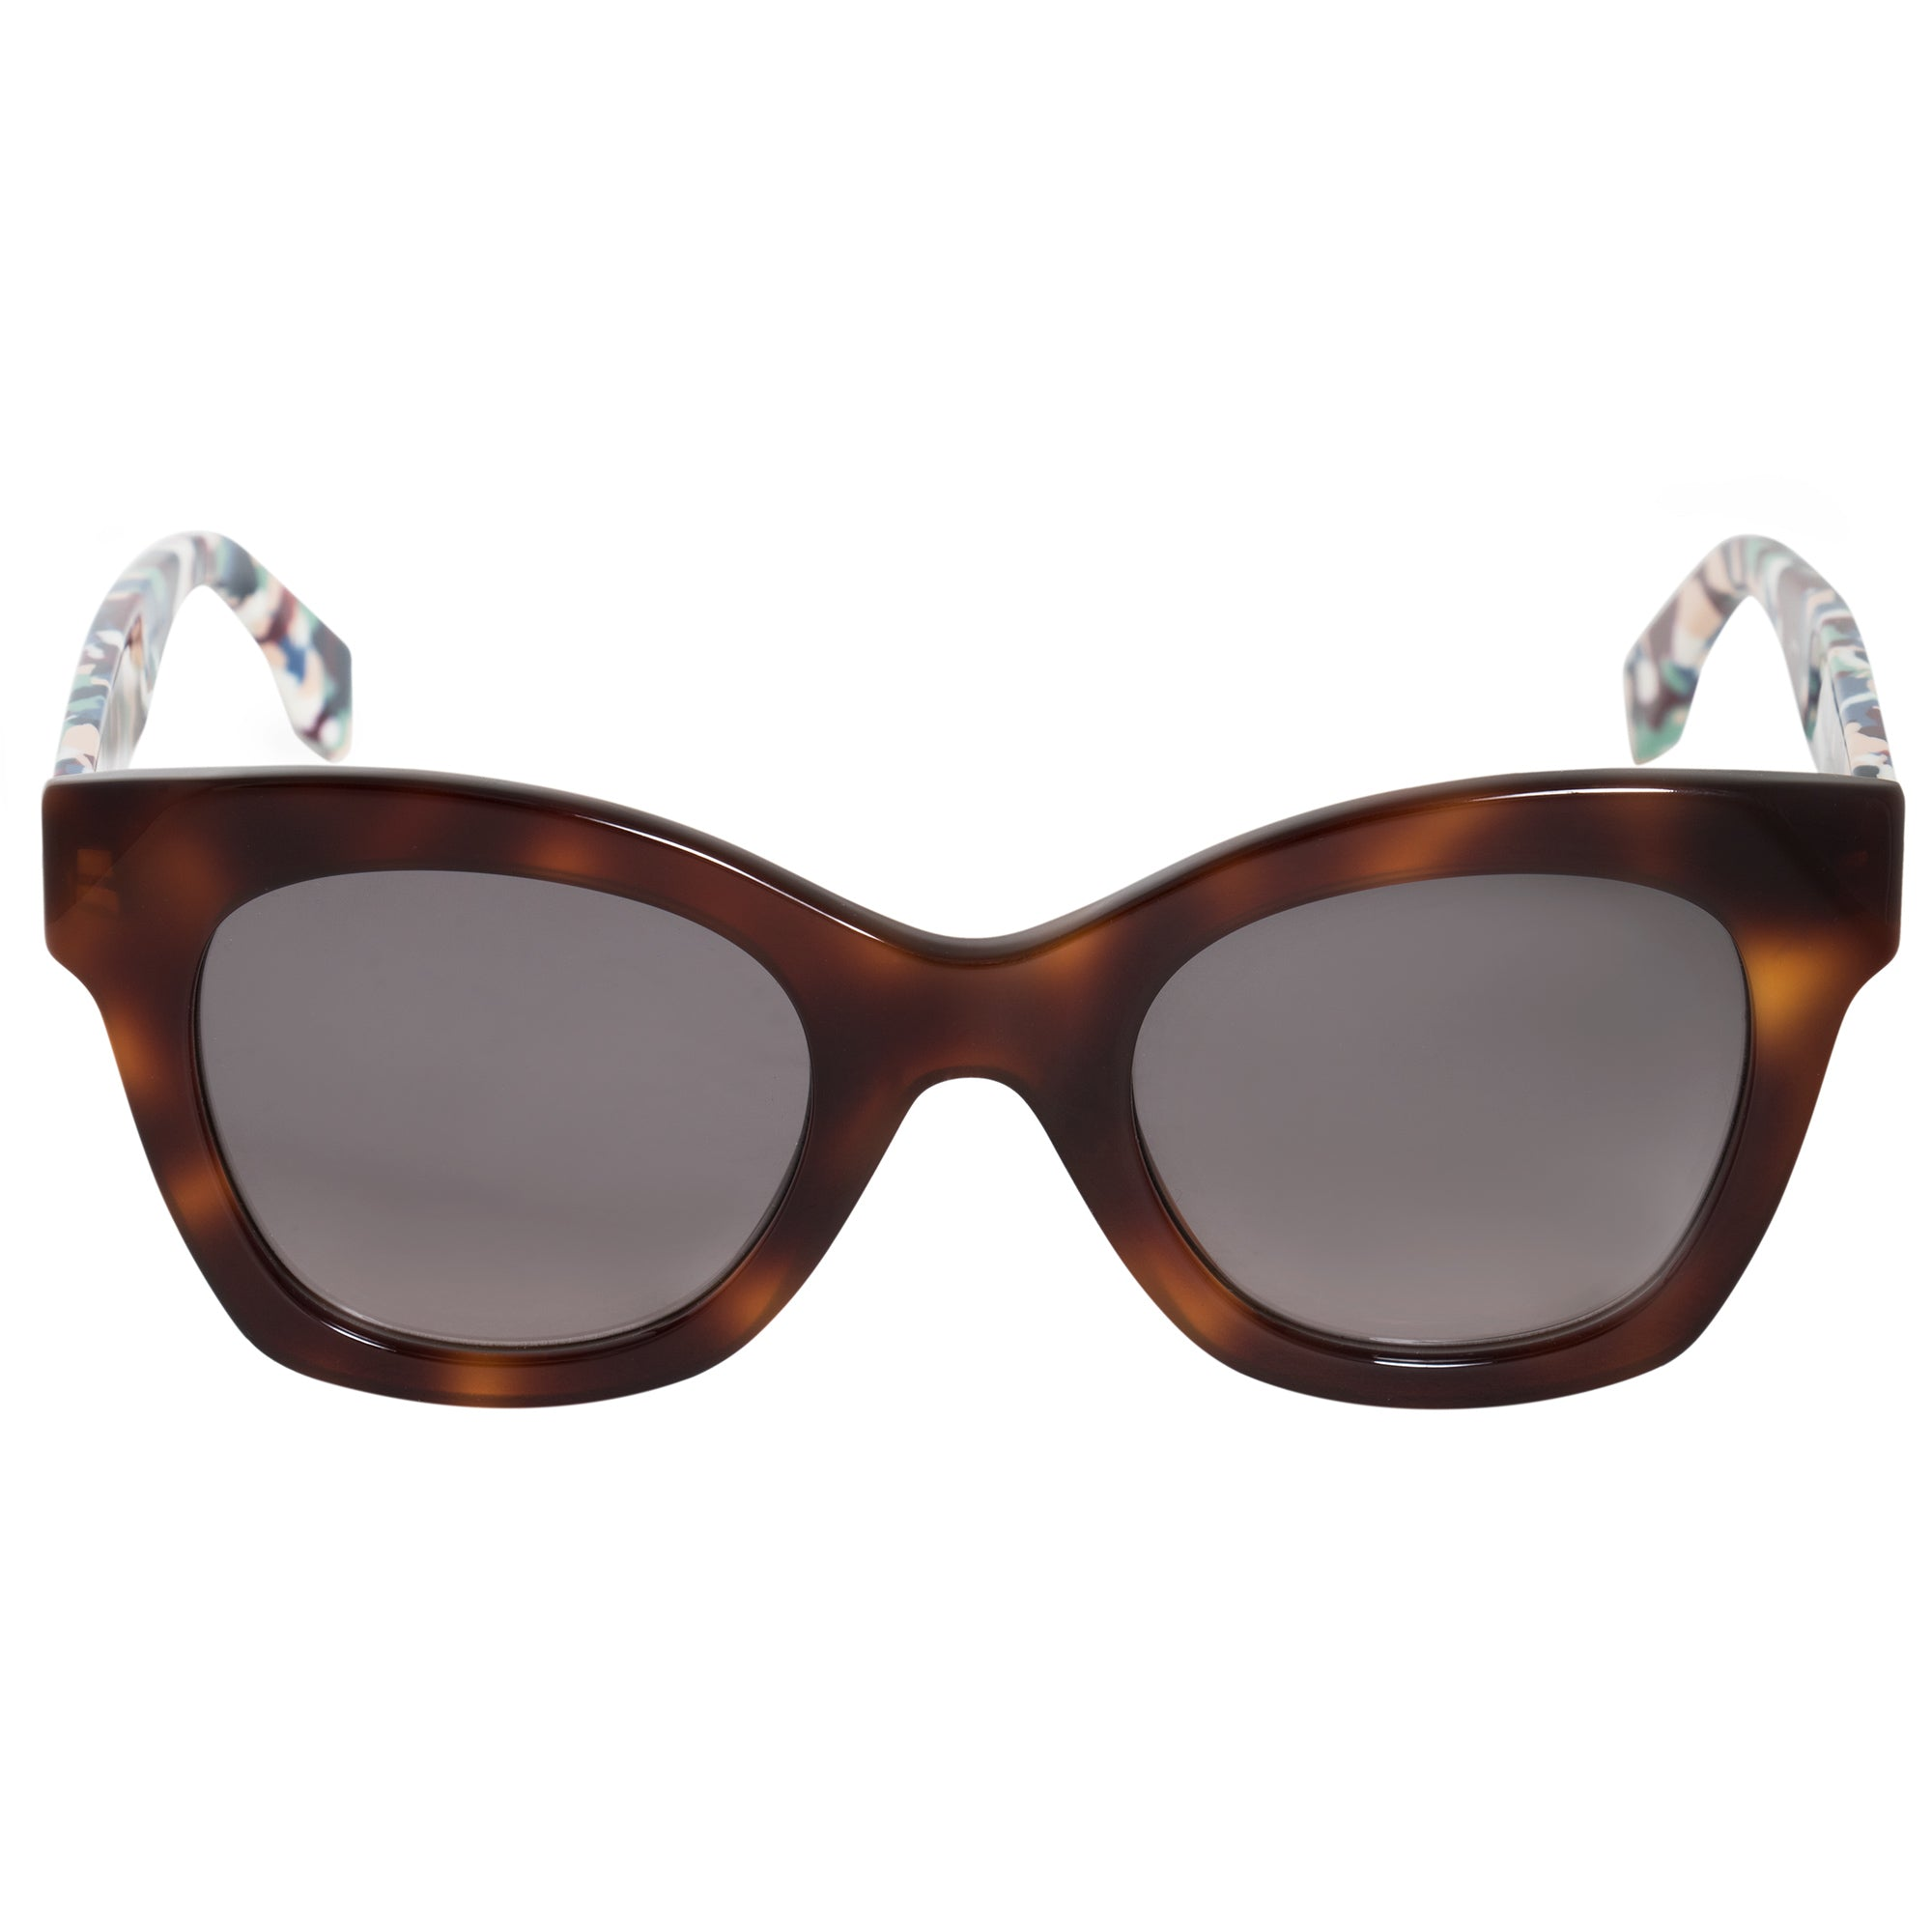 Fendi Square Sunglasses FF0204S 5MU EU 48